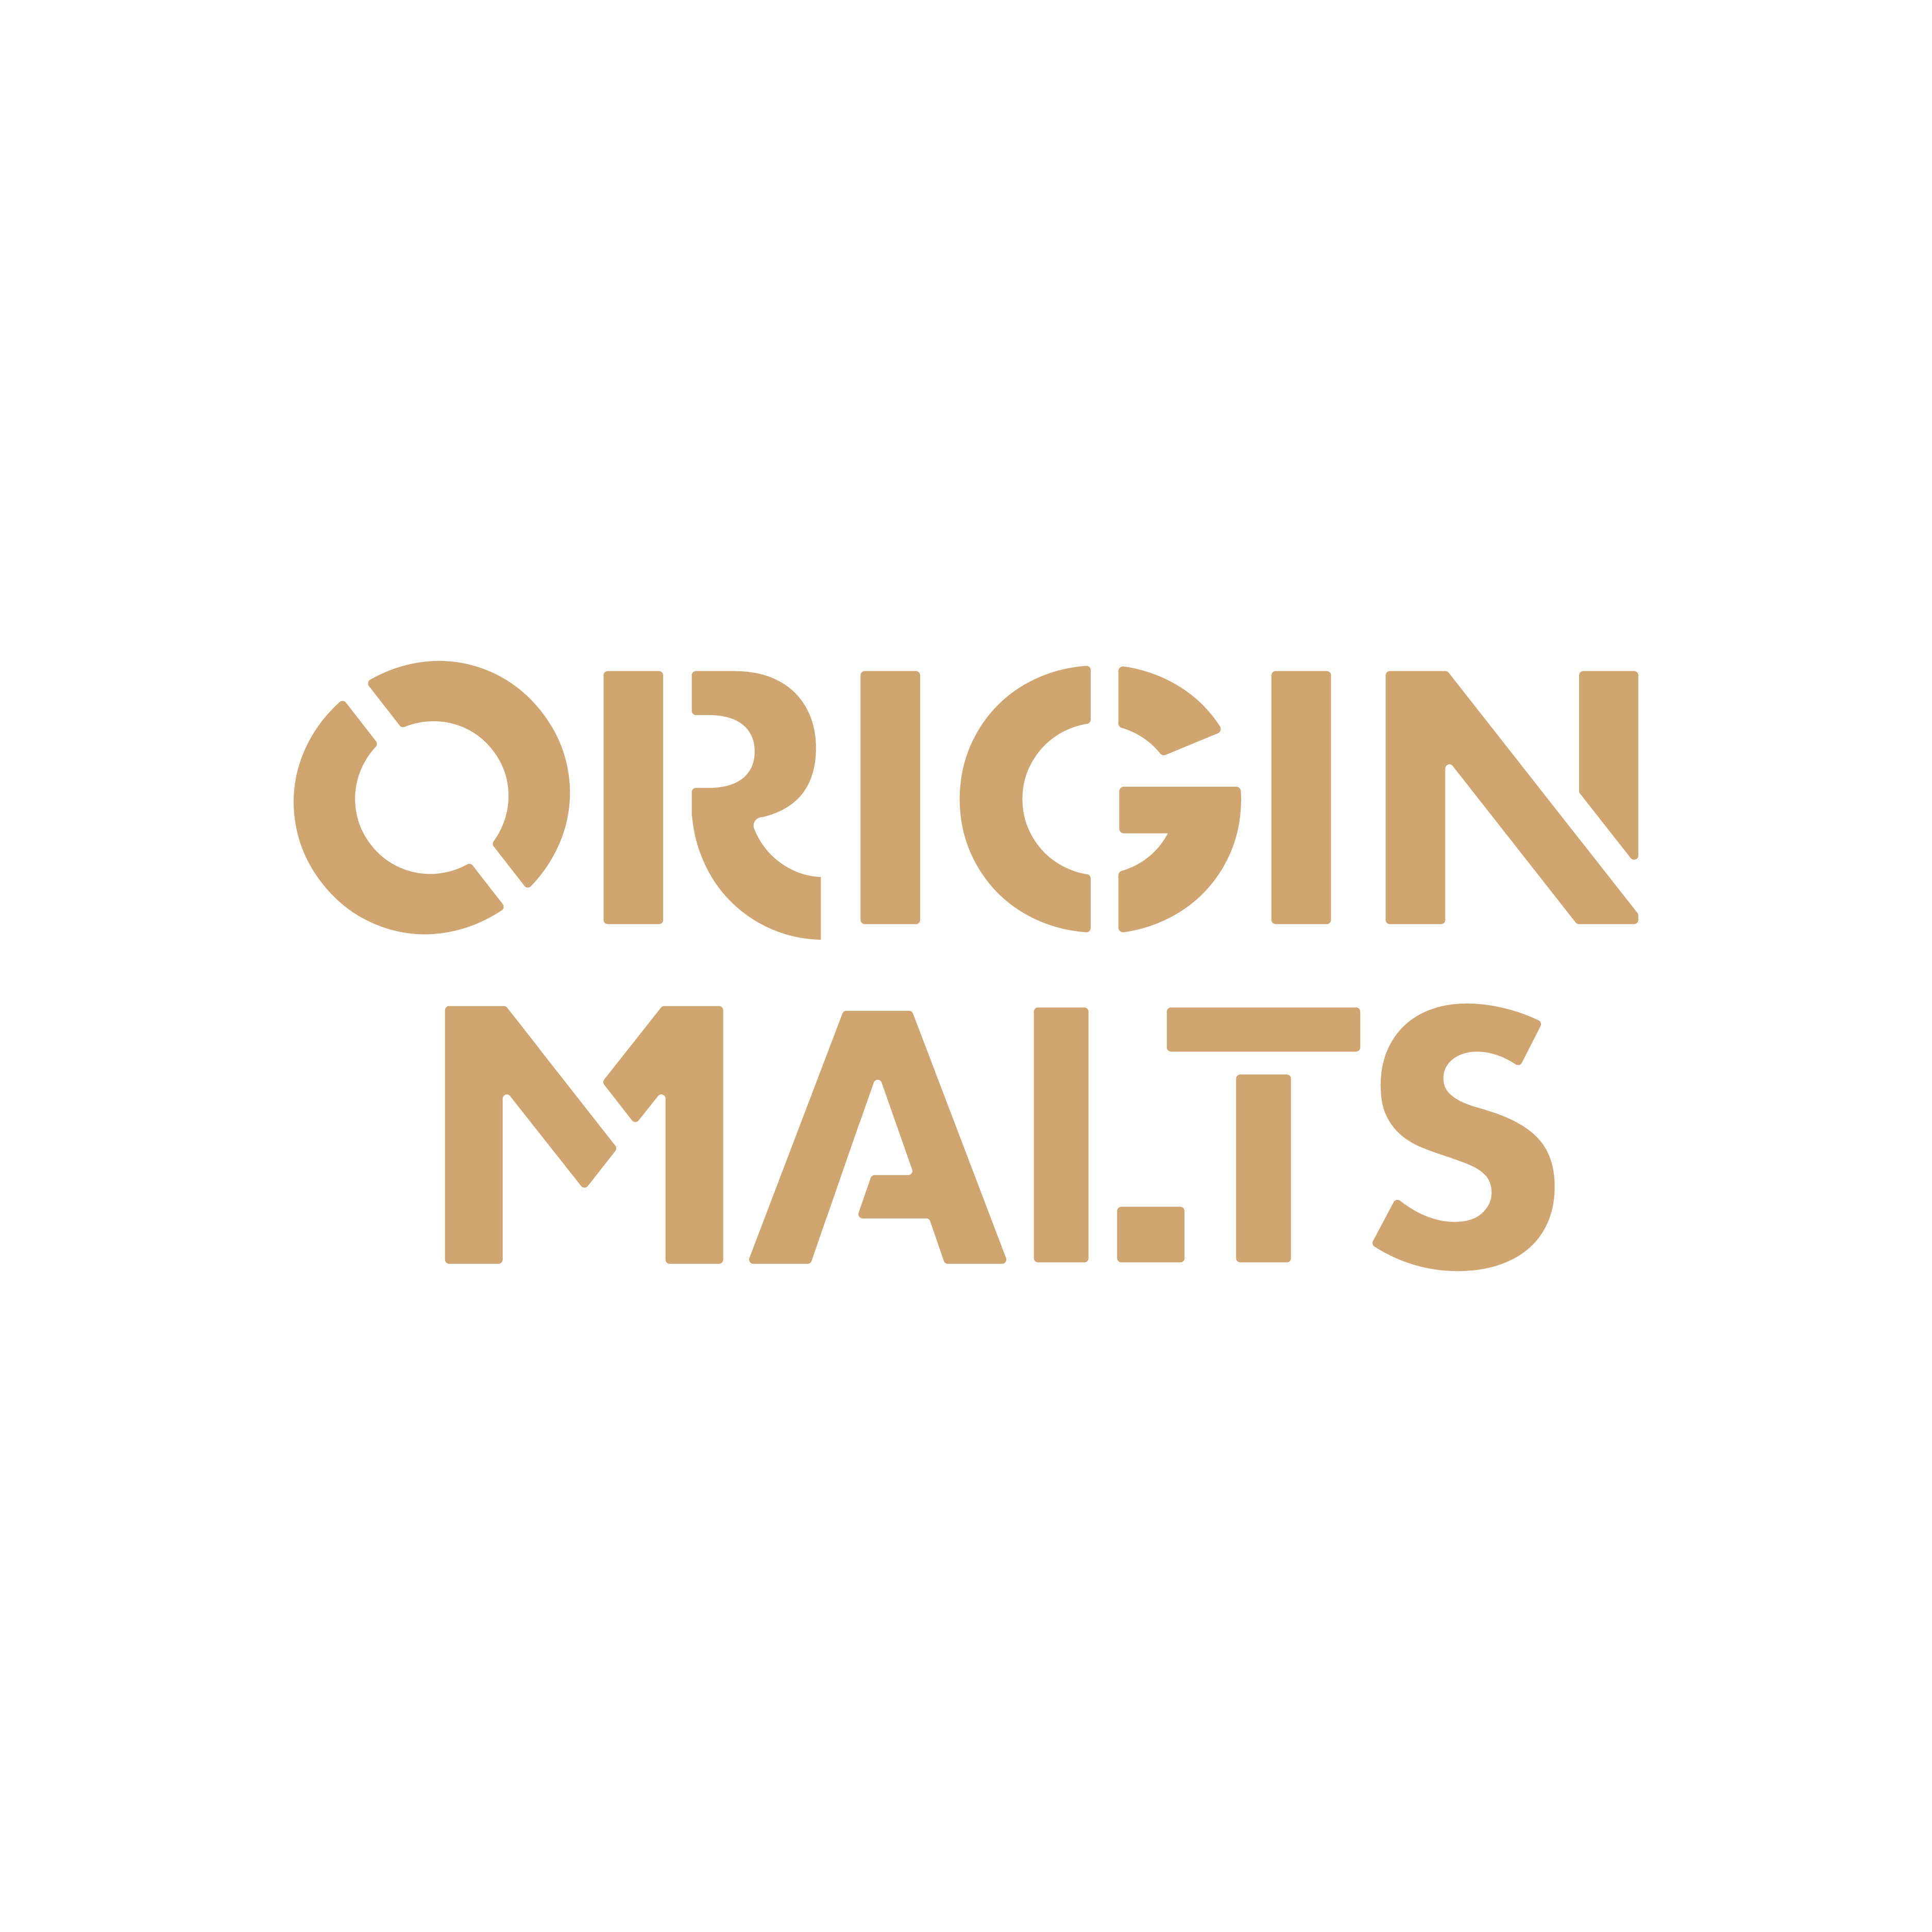 Origin Malts Wordmark